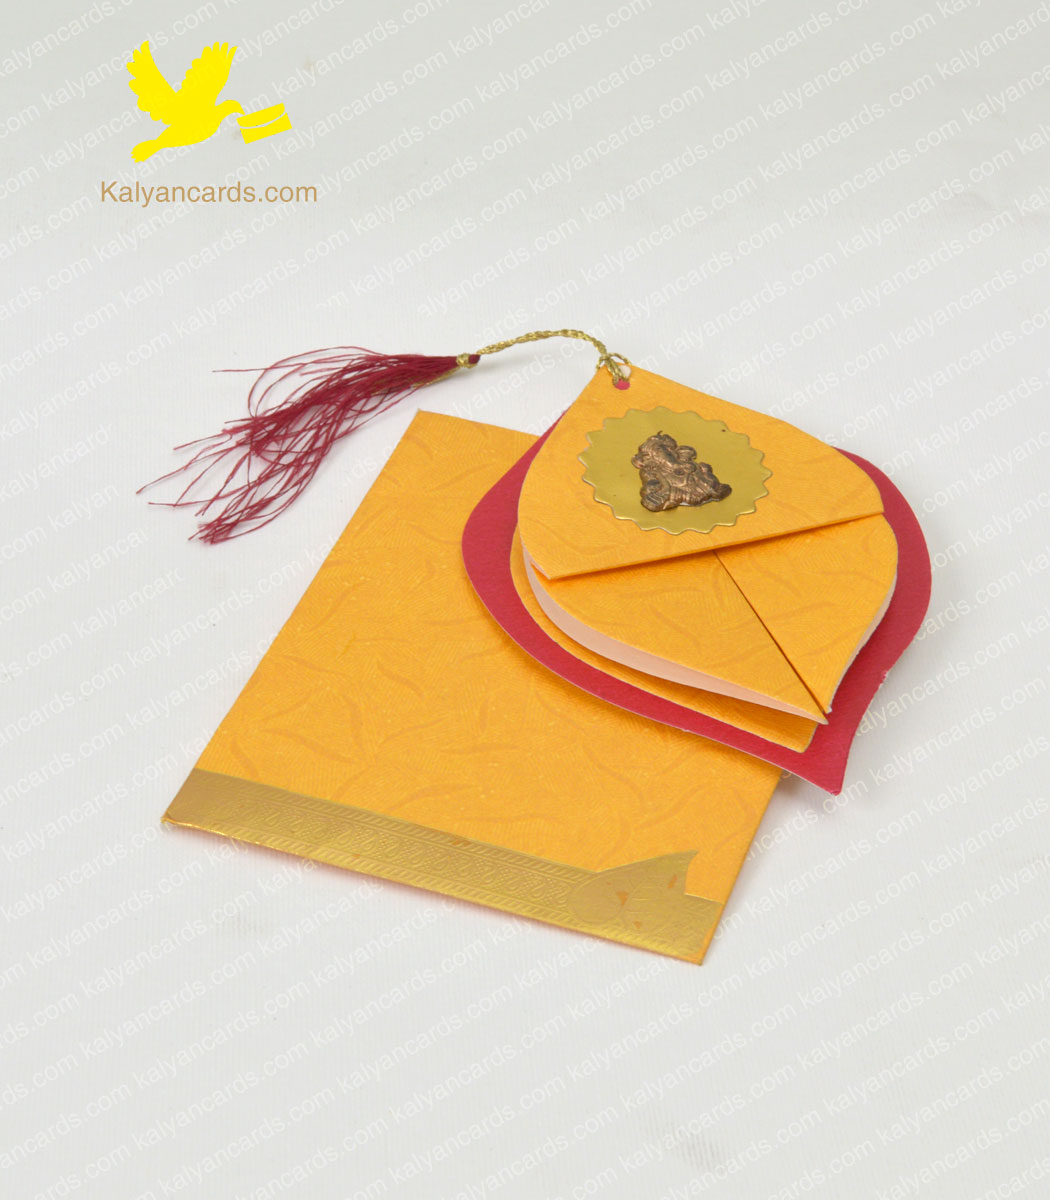 wedding cards in bangalore invitation cards online purchase in